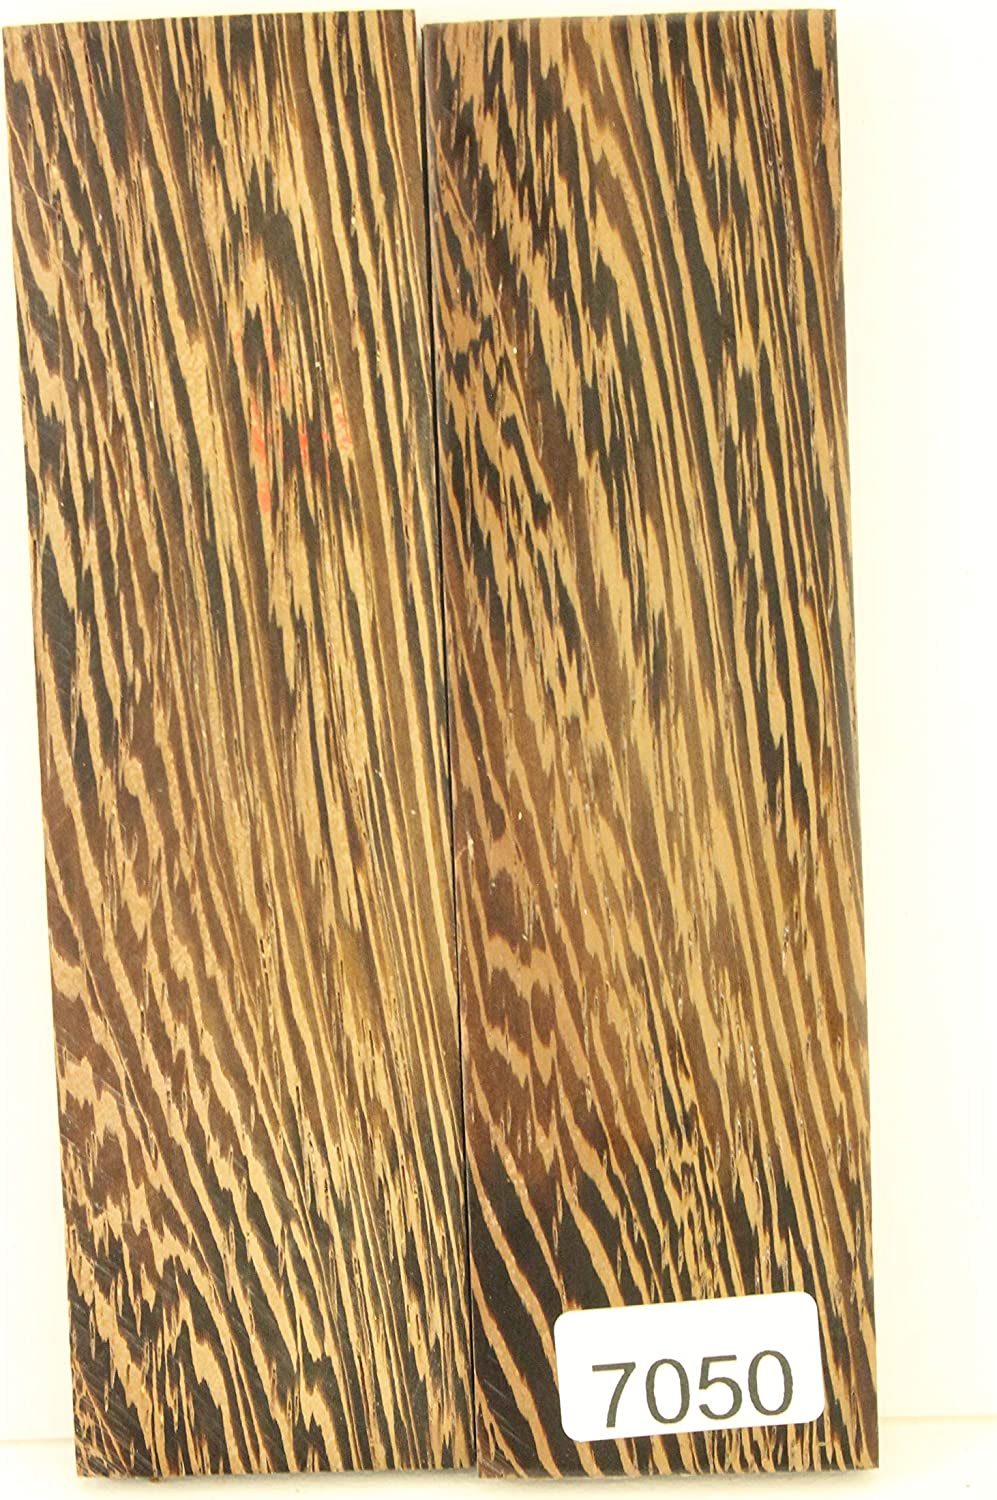 Wood Knife Scales Material – Payne Bros